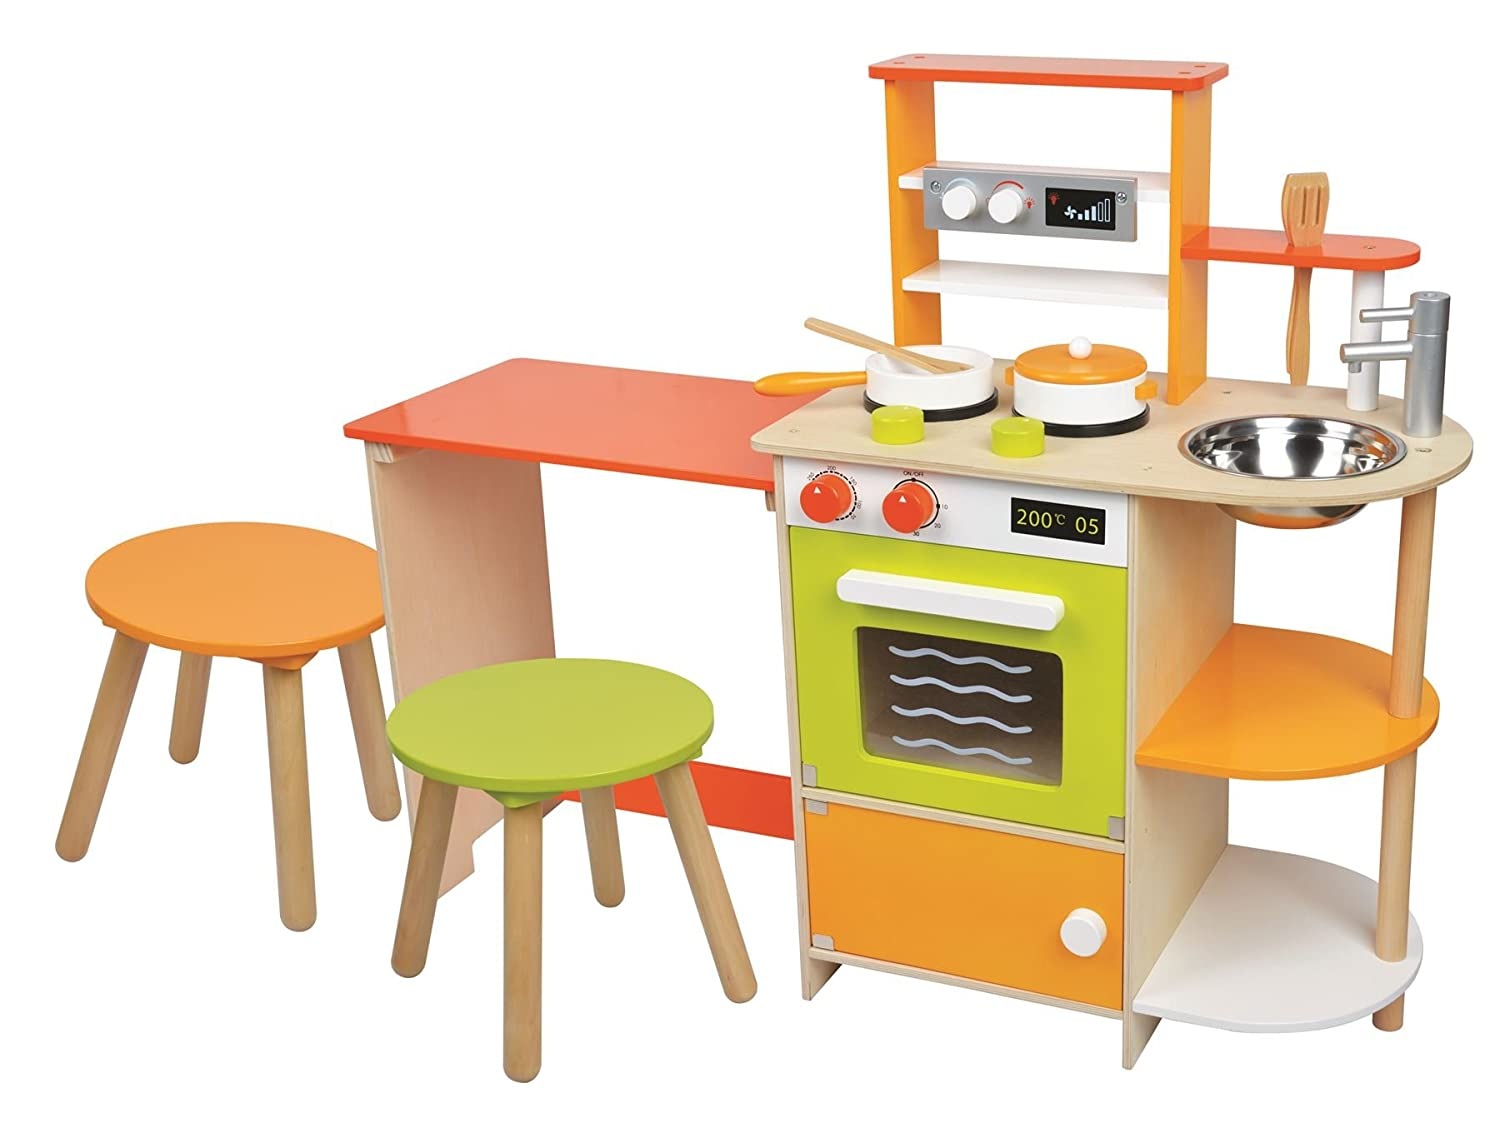 Lelin Wooden Childrens 2 In 1 Pretend Play Kitchen And Dining Room Set:  Amazon: Toys & Games